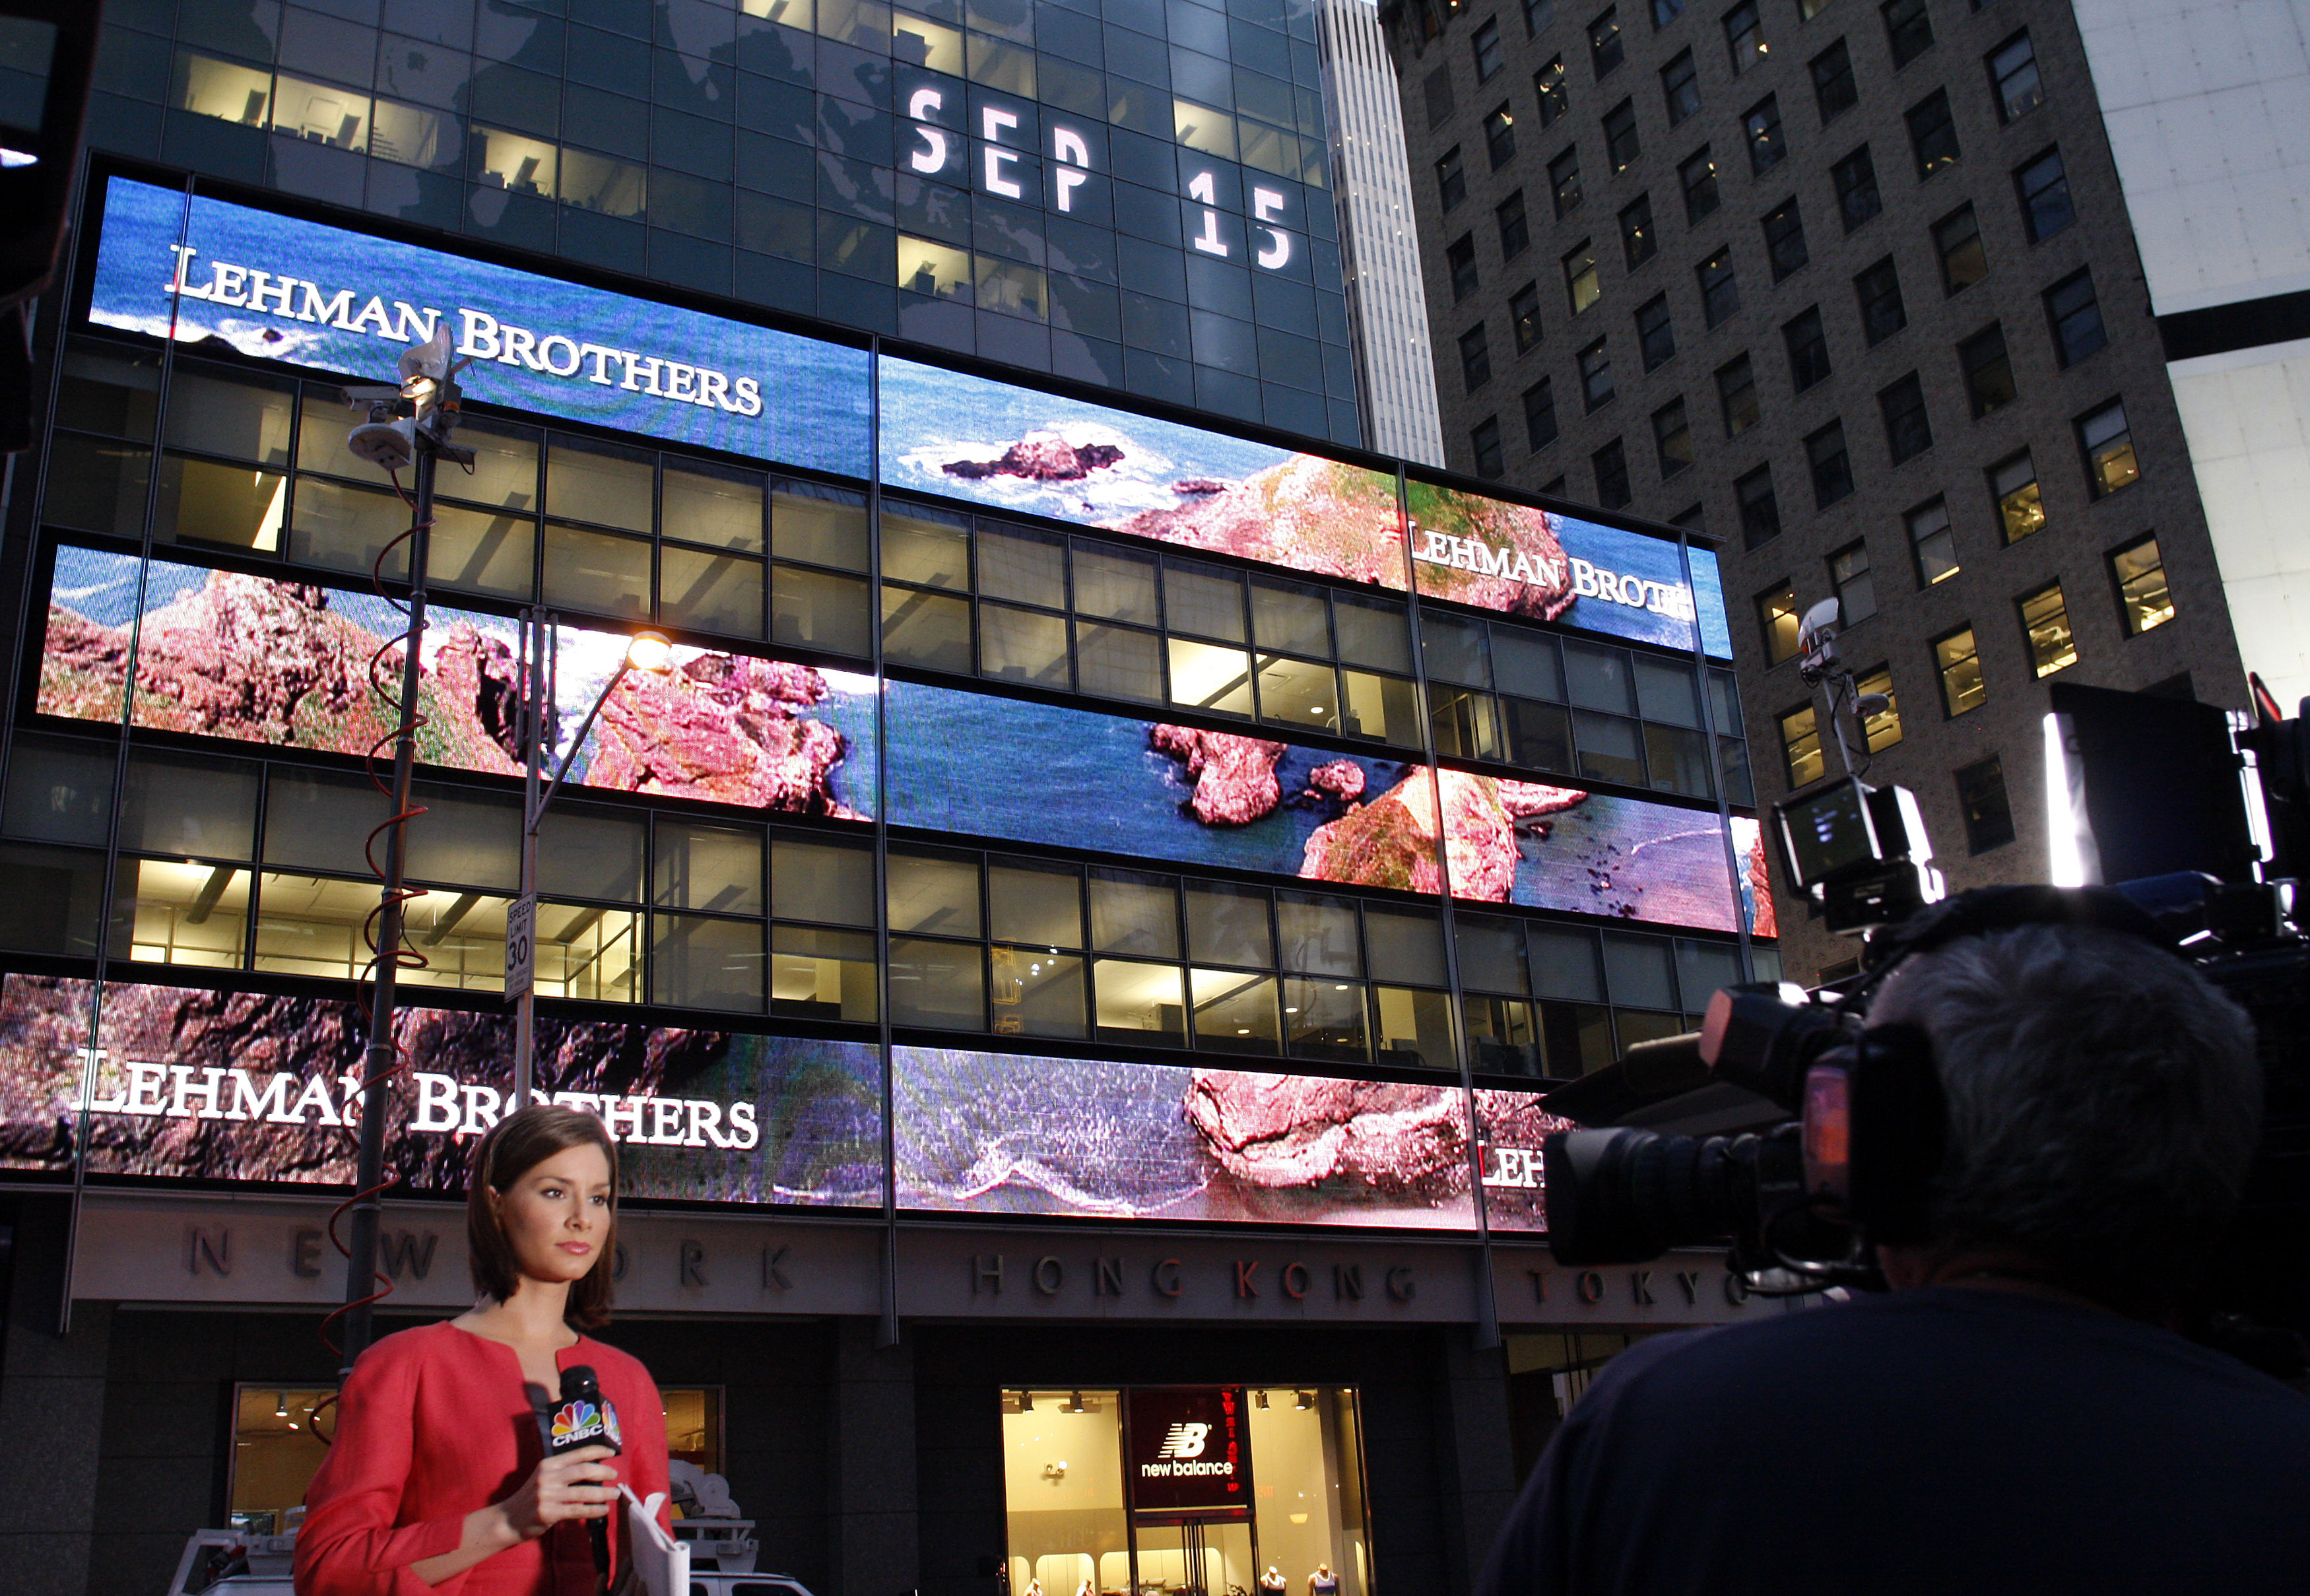 A journalist reports outside the Lehman Brothers building in New York, September 15, 2008.